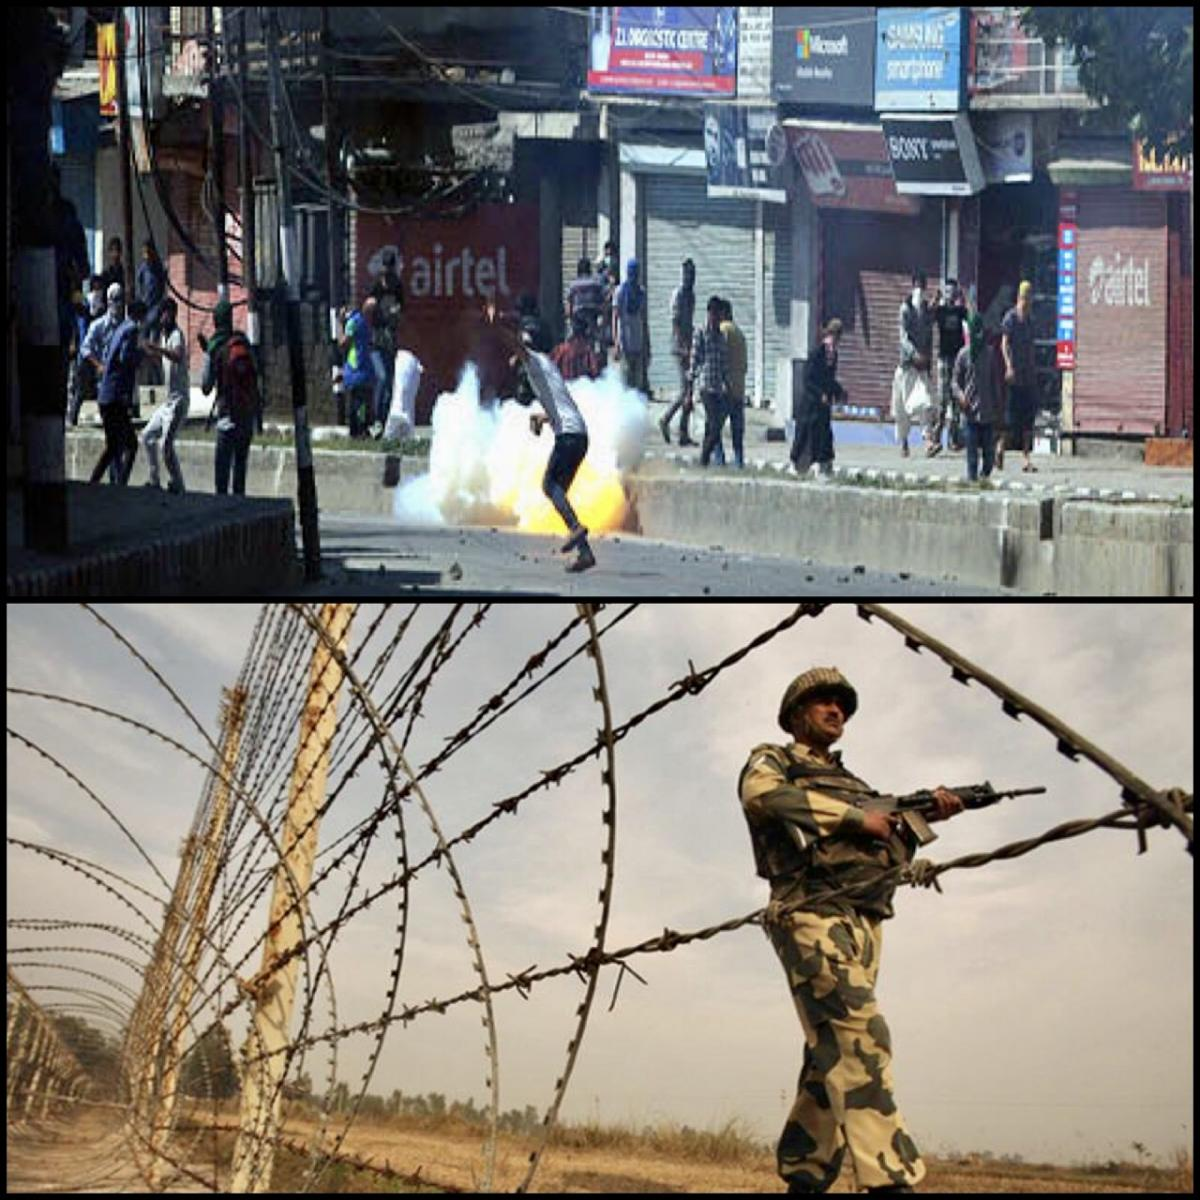 With Battle Lines Drawn & No Efforts at Dialogue, Kashmir, One Year after Burhan Wani's Killing